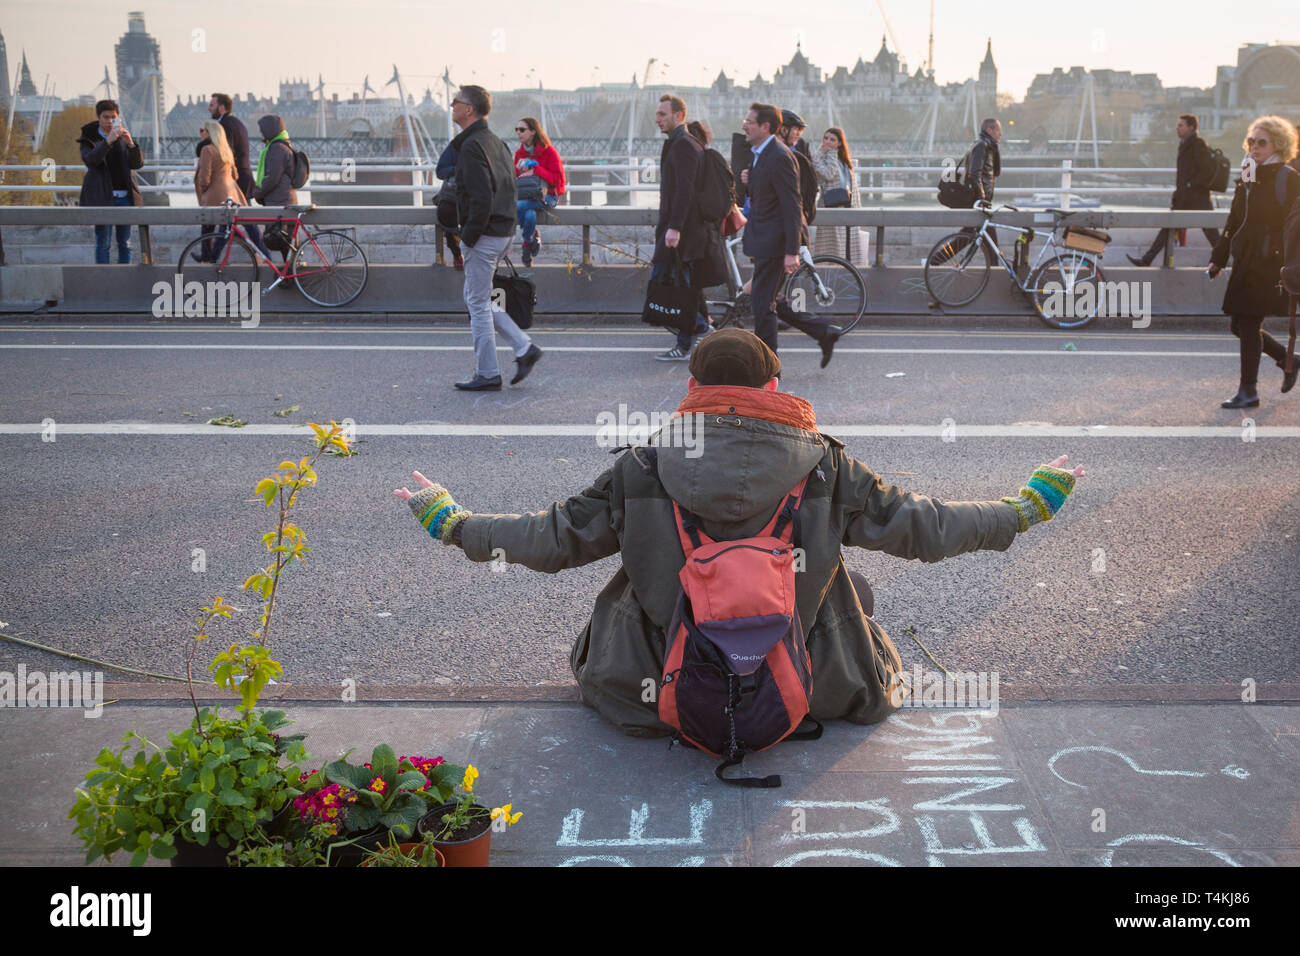 A demonstrator meditates on Waterloo Bridge for the Extinction Rebellion demonstration as people walk by Stock Photo